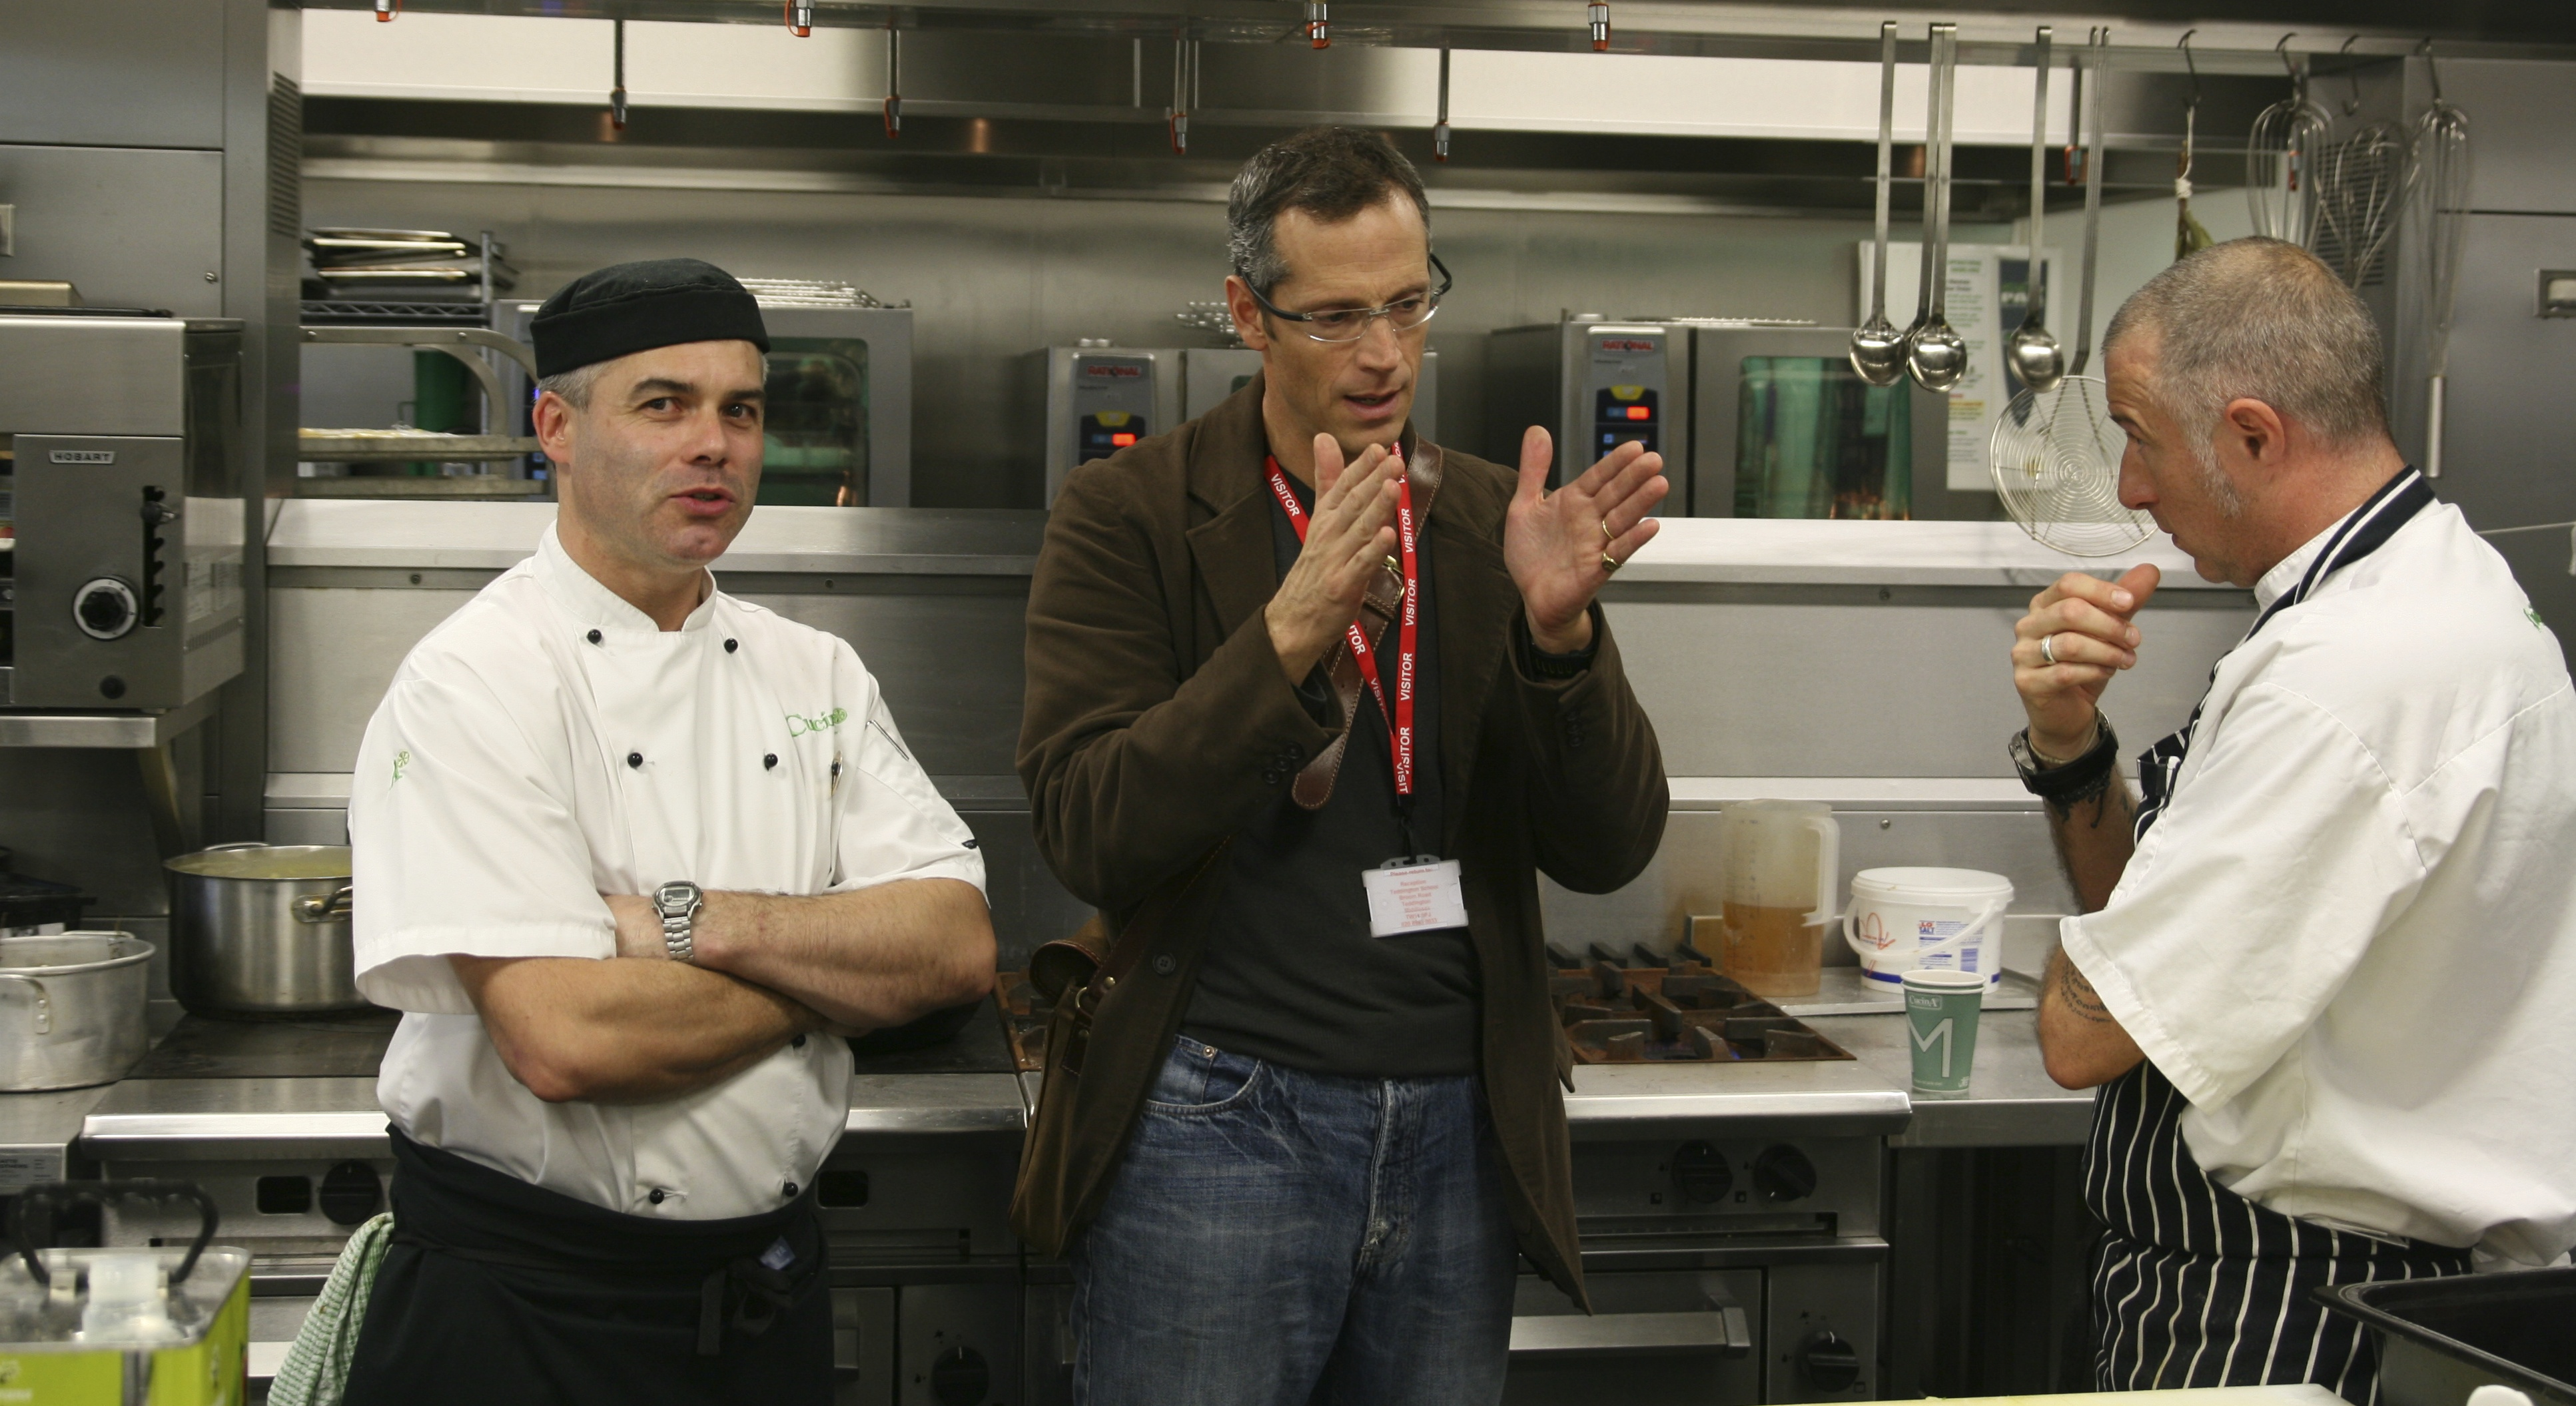 teddington school chef phil wilkins with phil howard and cucina ... - Chef In Cucina